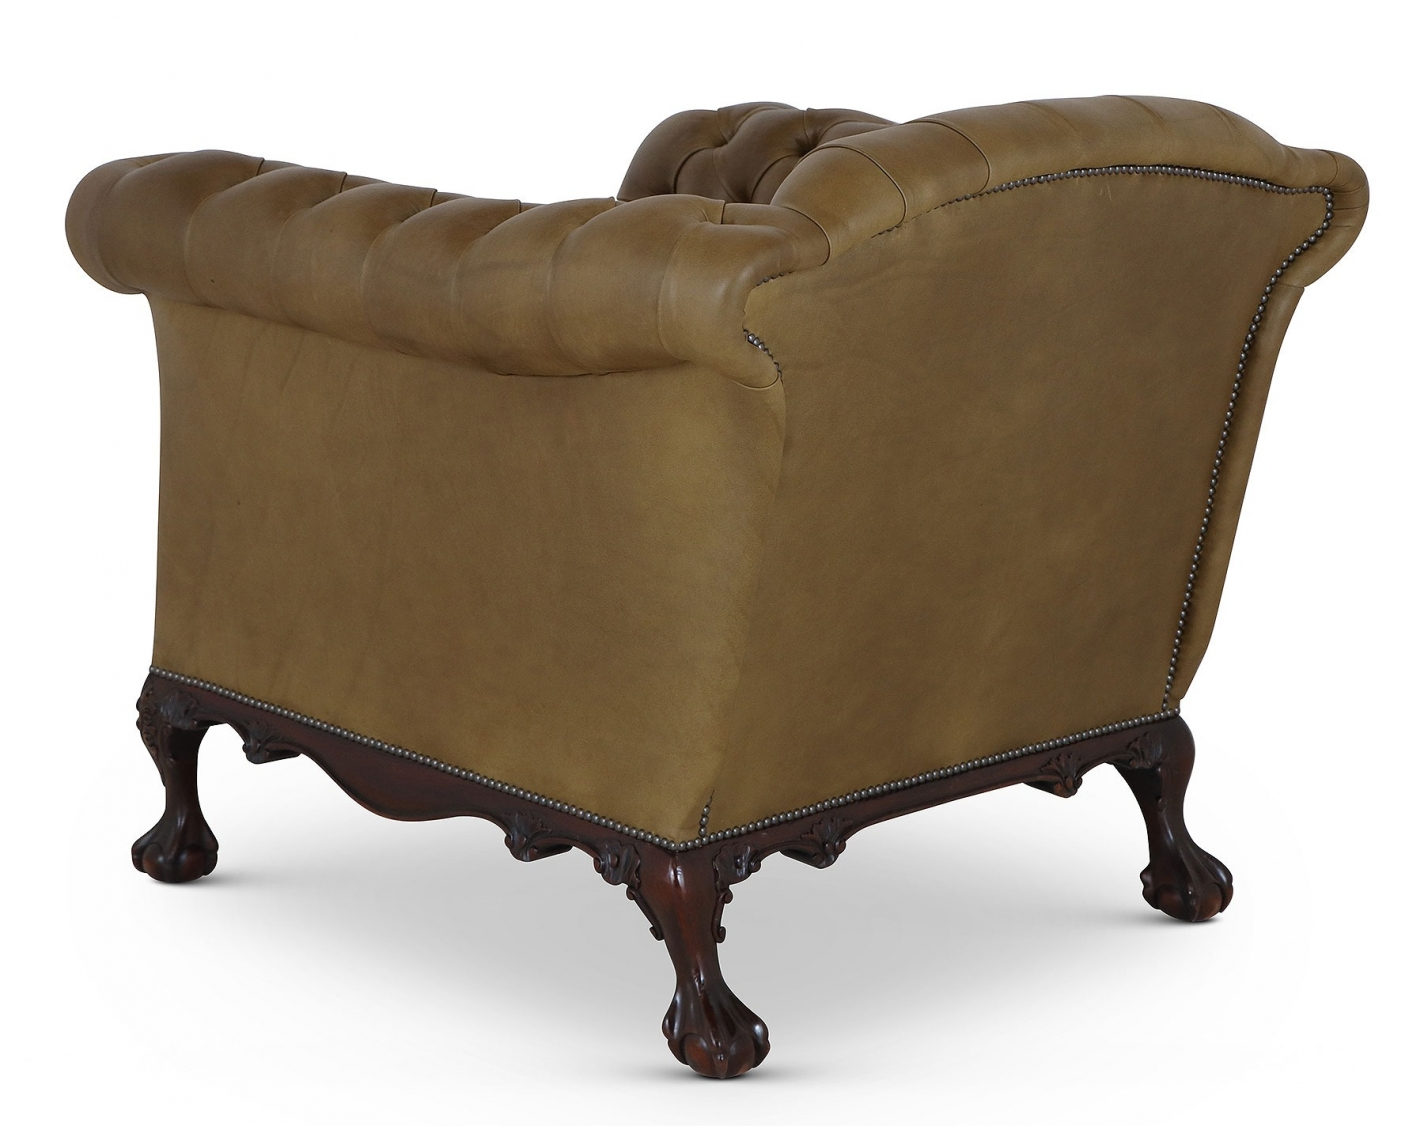 Dryden Howard and Sons style sofa and chair - Olive green